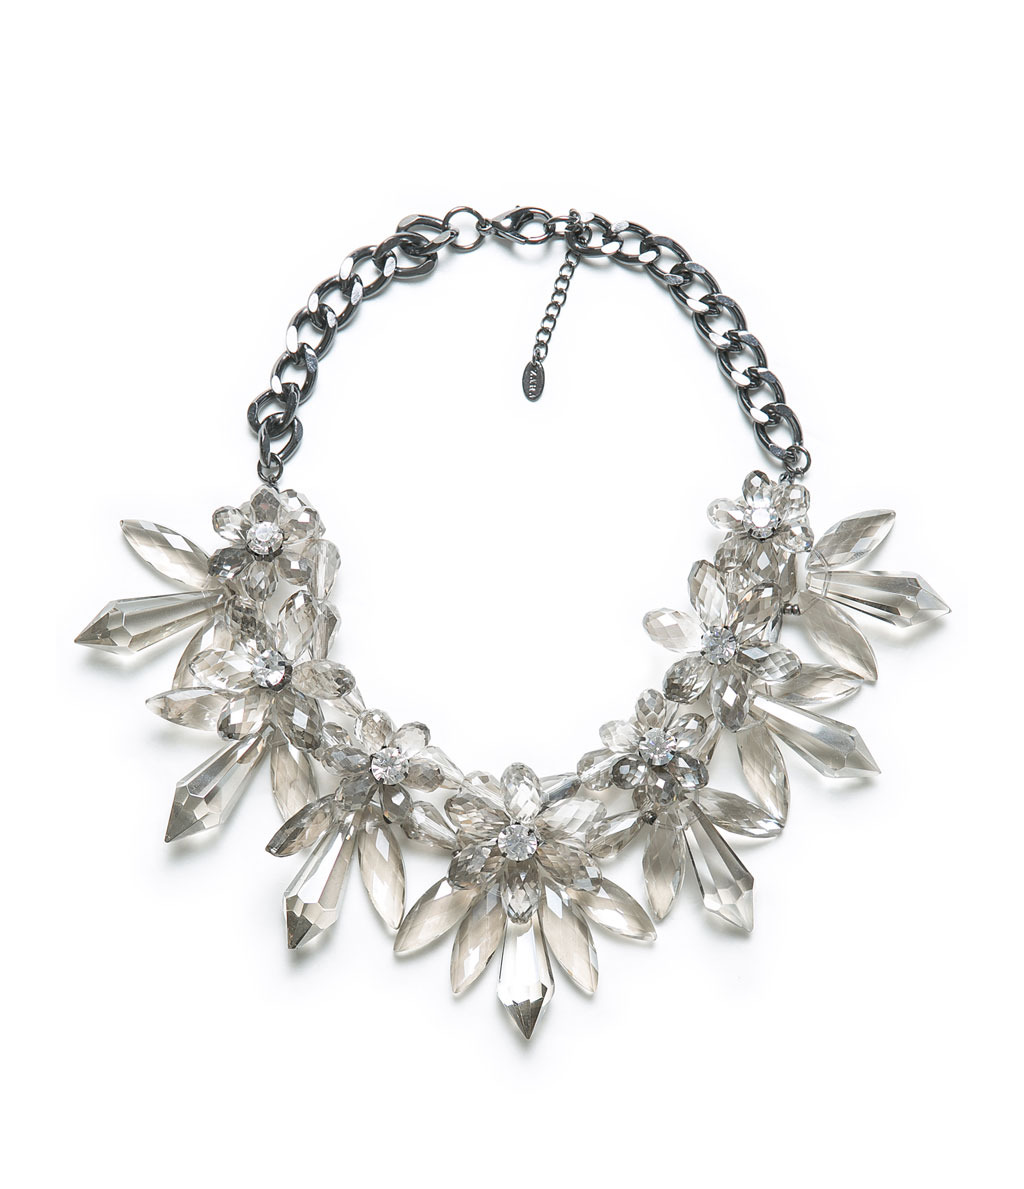 Stones And Flower Necklace - predominant colour: stone; occasions: casual, evening, occasion, holiday; length: short; size: large/oversized; material: plastic/rubber; finish: metallic; embellishment: crystals/glass; style: bib/statement; season: a/w 2013